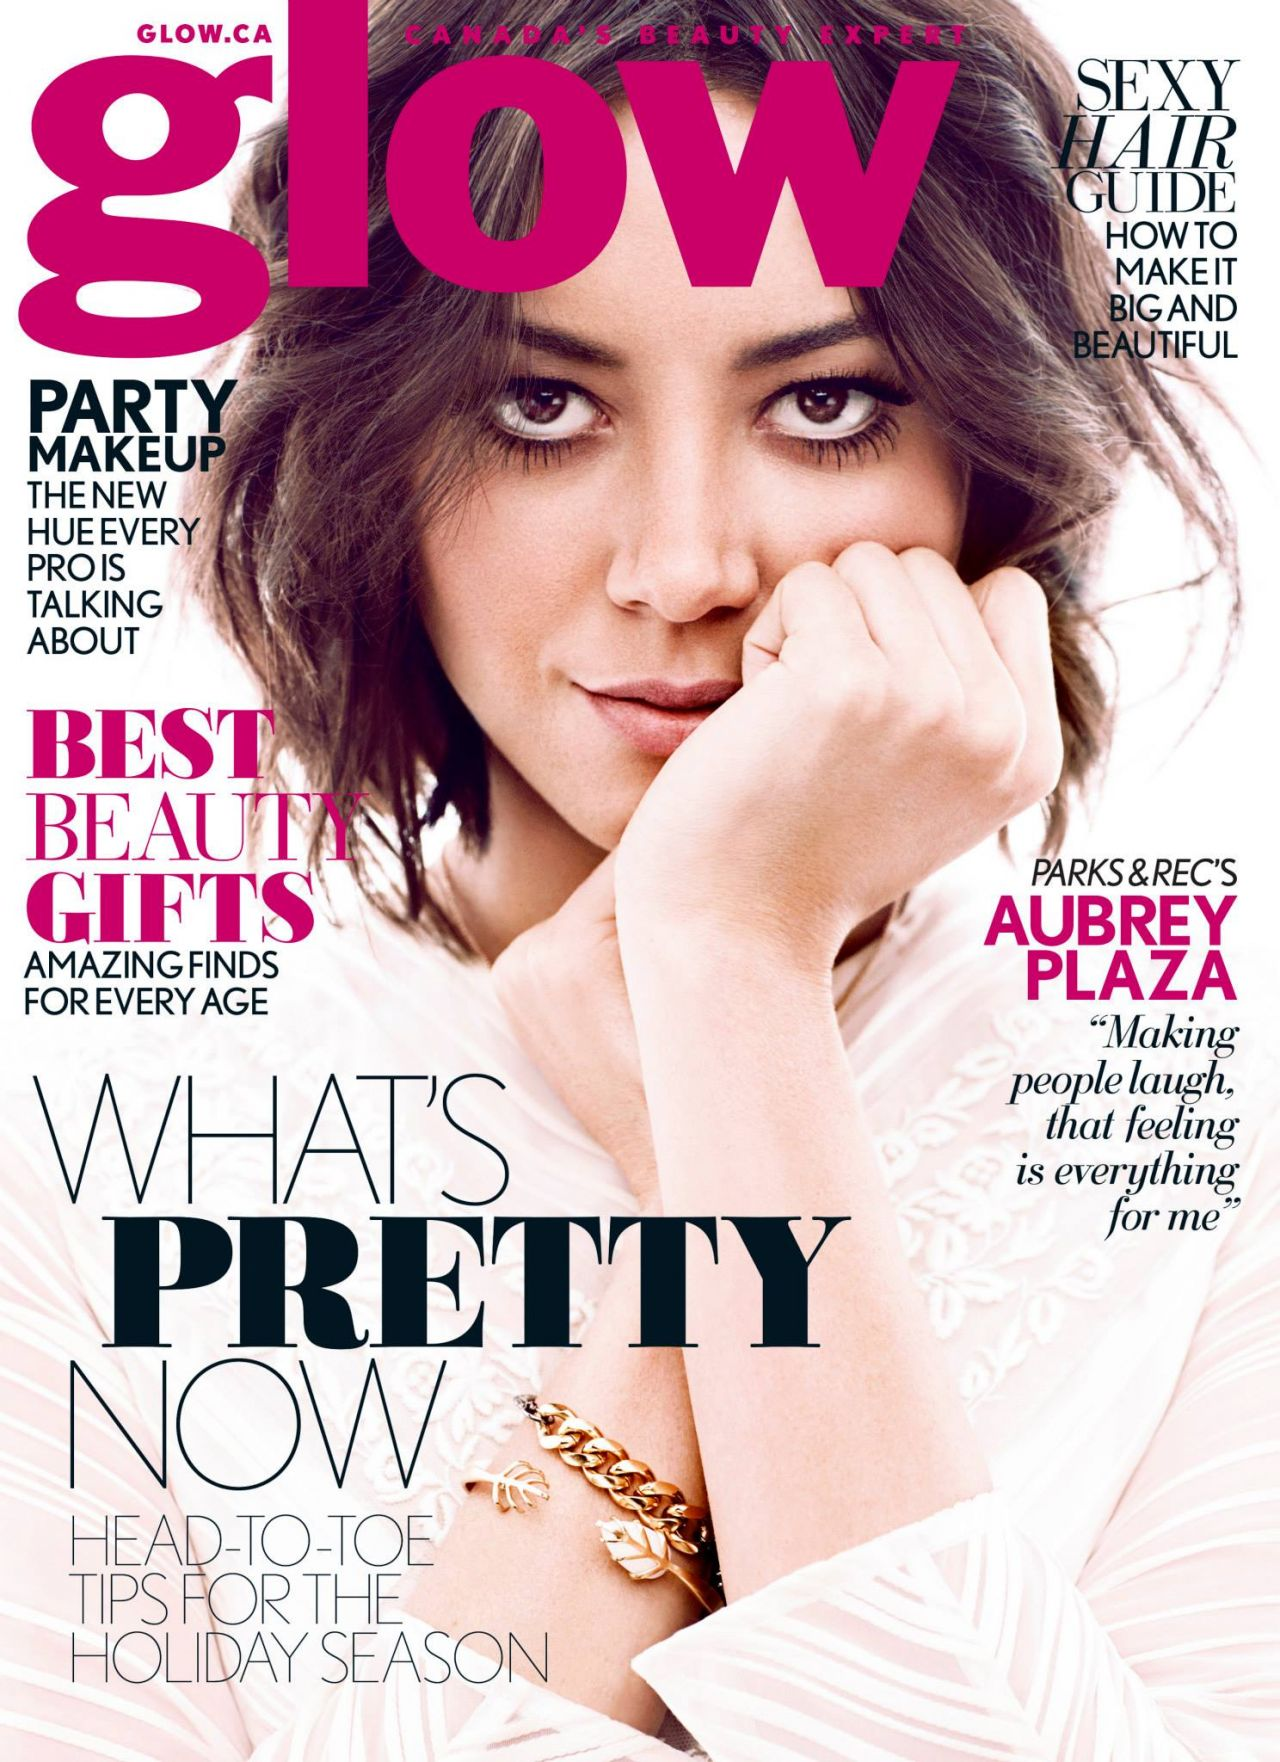 Aubrey Plaza - GLOW Magazine - December 2013 Issue